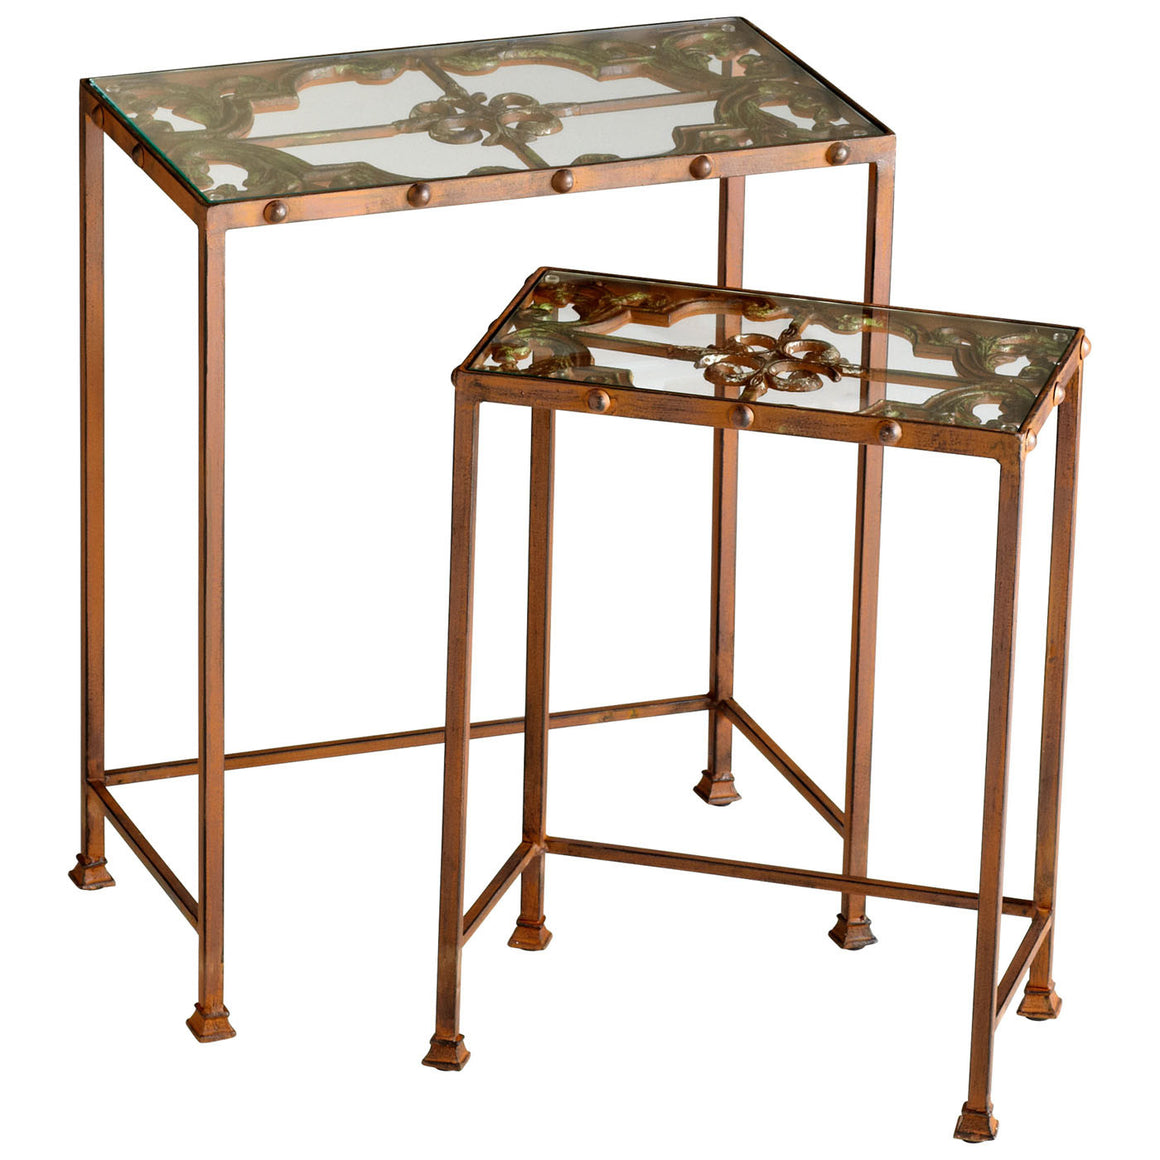 Gunnison Nesting Tables 04887 by Cyan Design